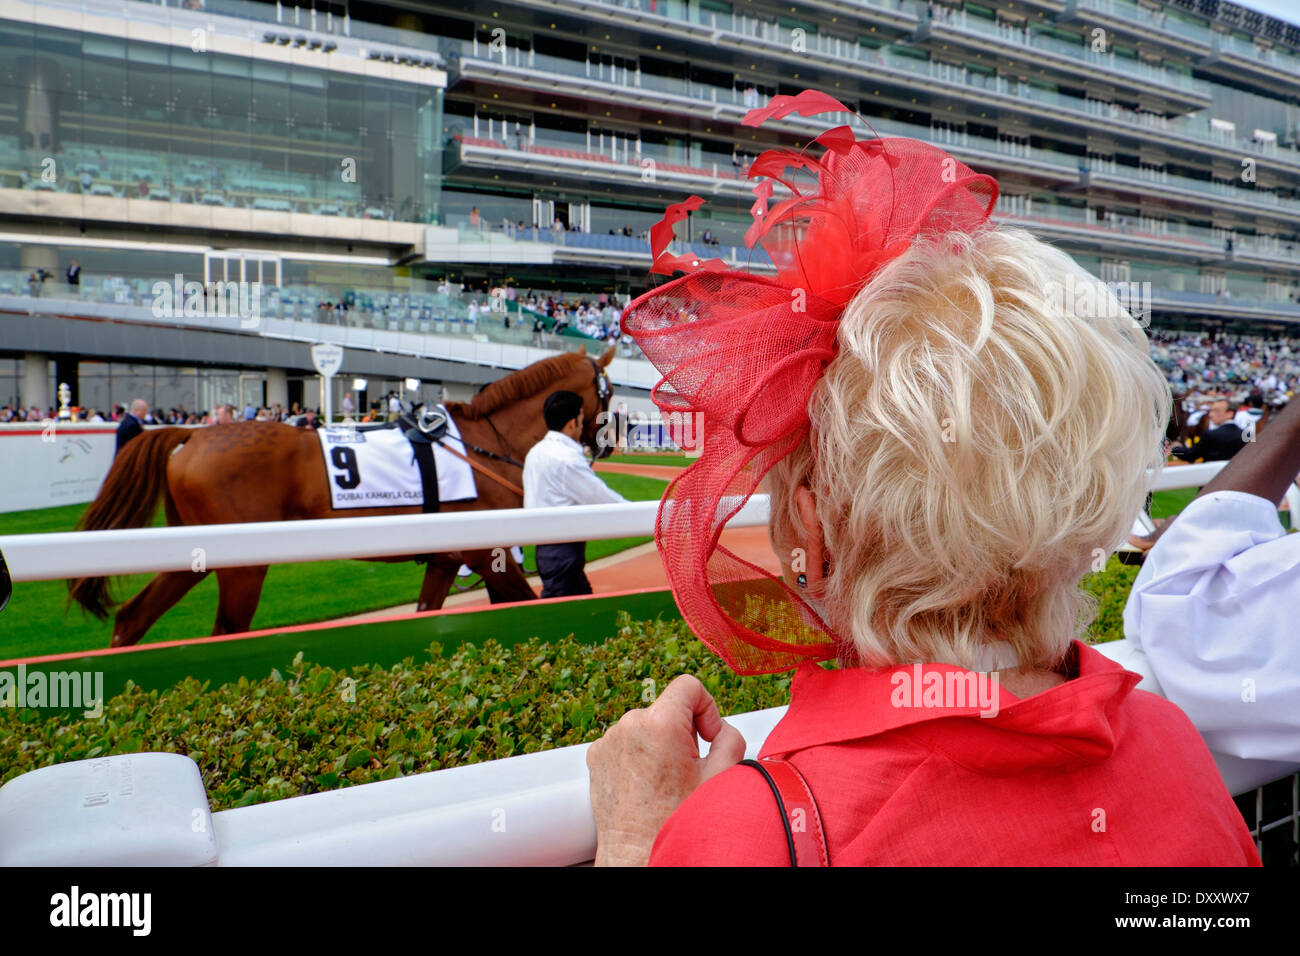 Lady with hat looking at horses at Dubai World Cup horse racing championship at Meydan racecourse in Dubai United Arab Emirates - Stock Image